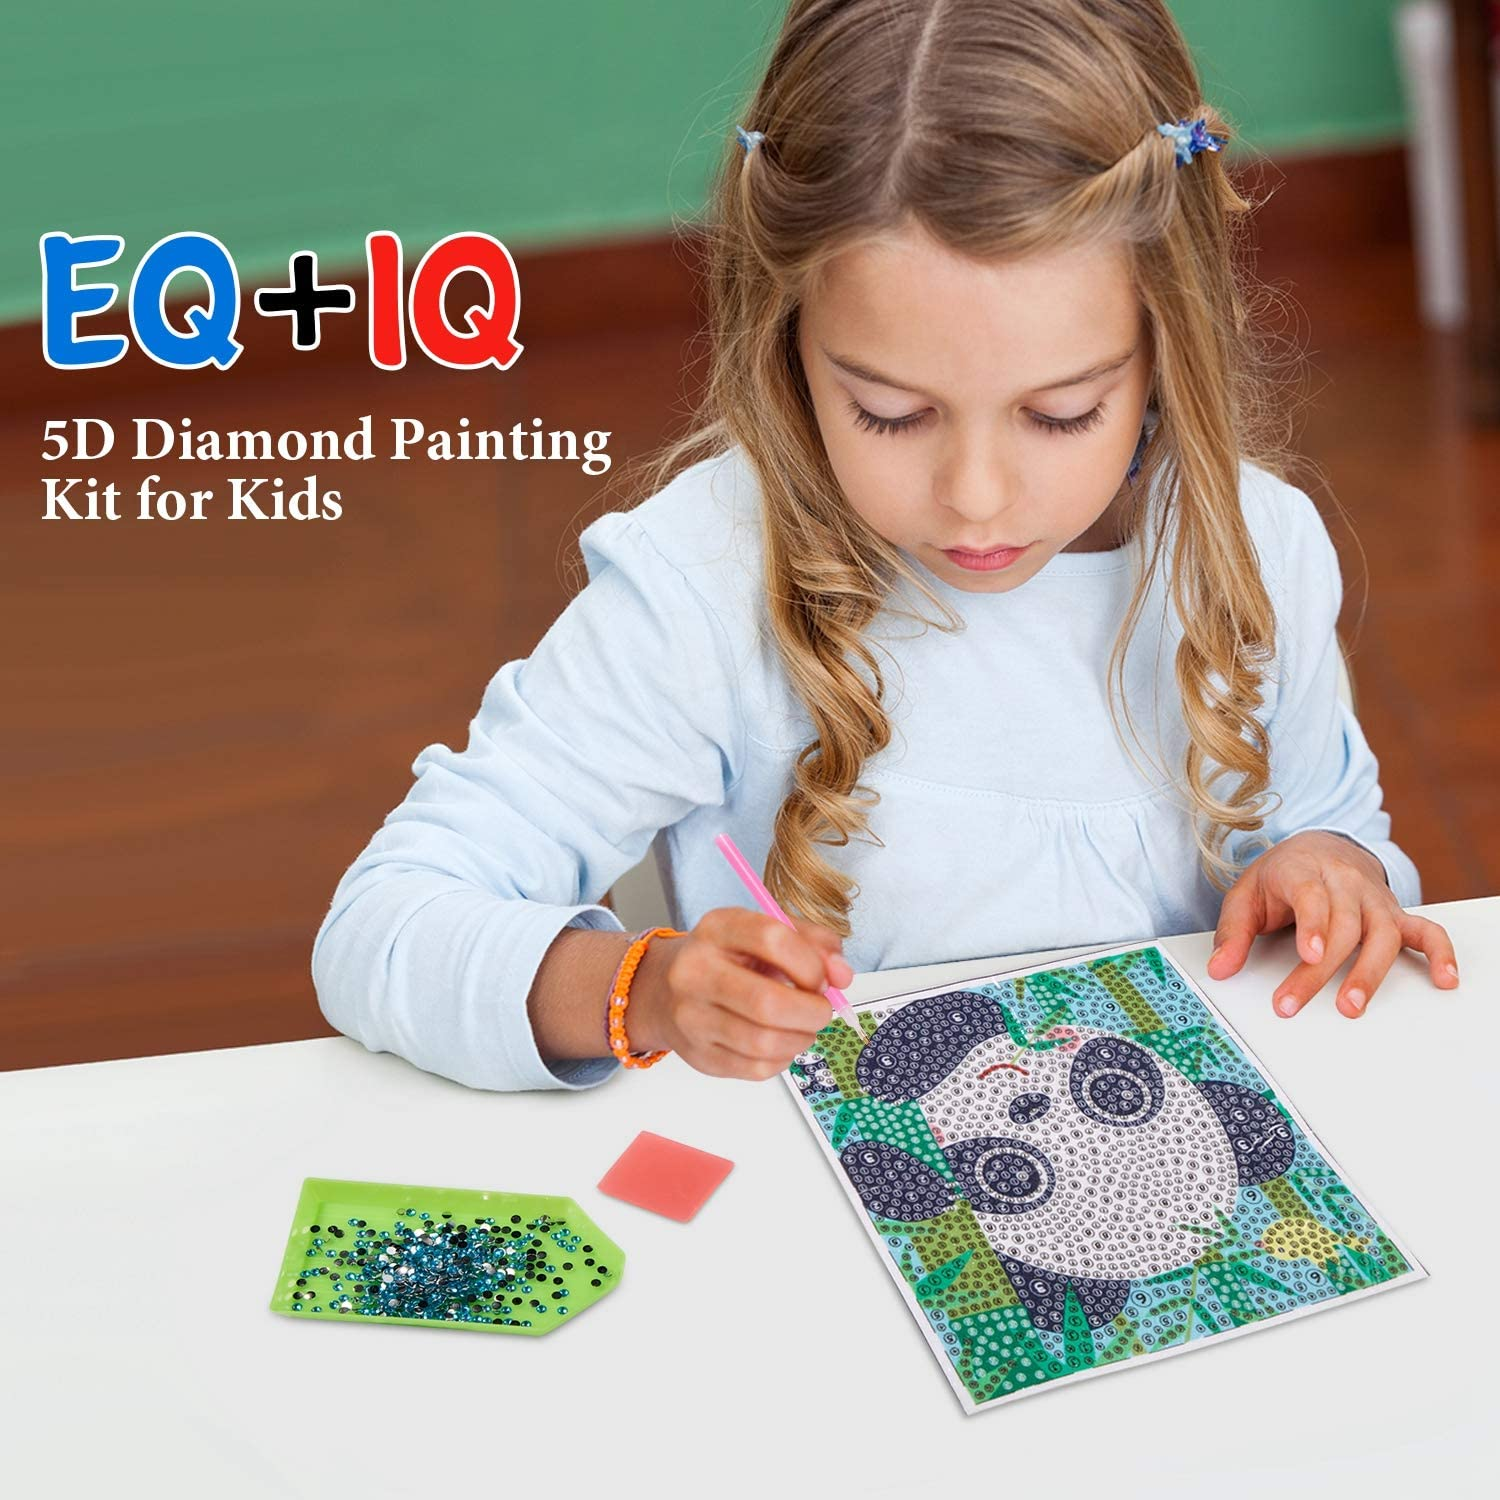 Yisong 3 Packs 5D Diamond Painting Kit for Kids Full Drill Painting by Number Kits Easy to DIY Diamond Painting Art and Crafts Set for Home Wall Decor